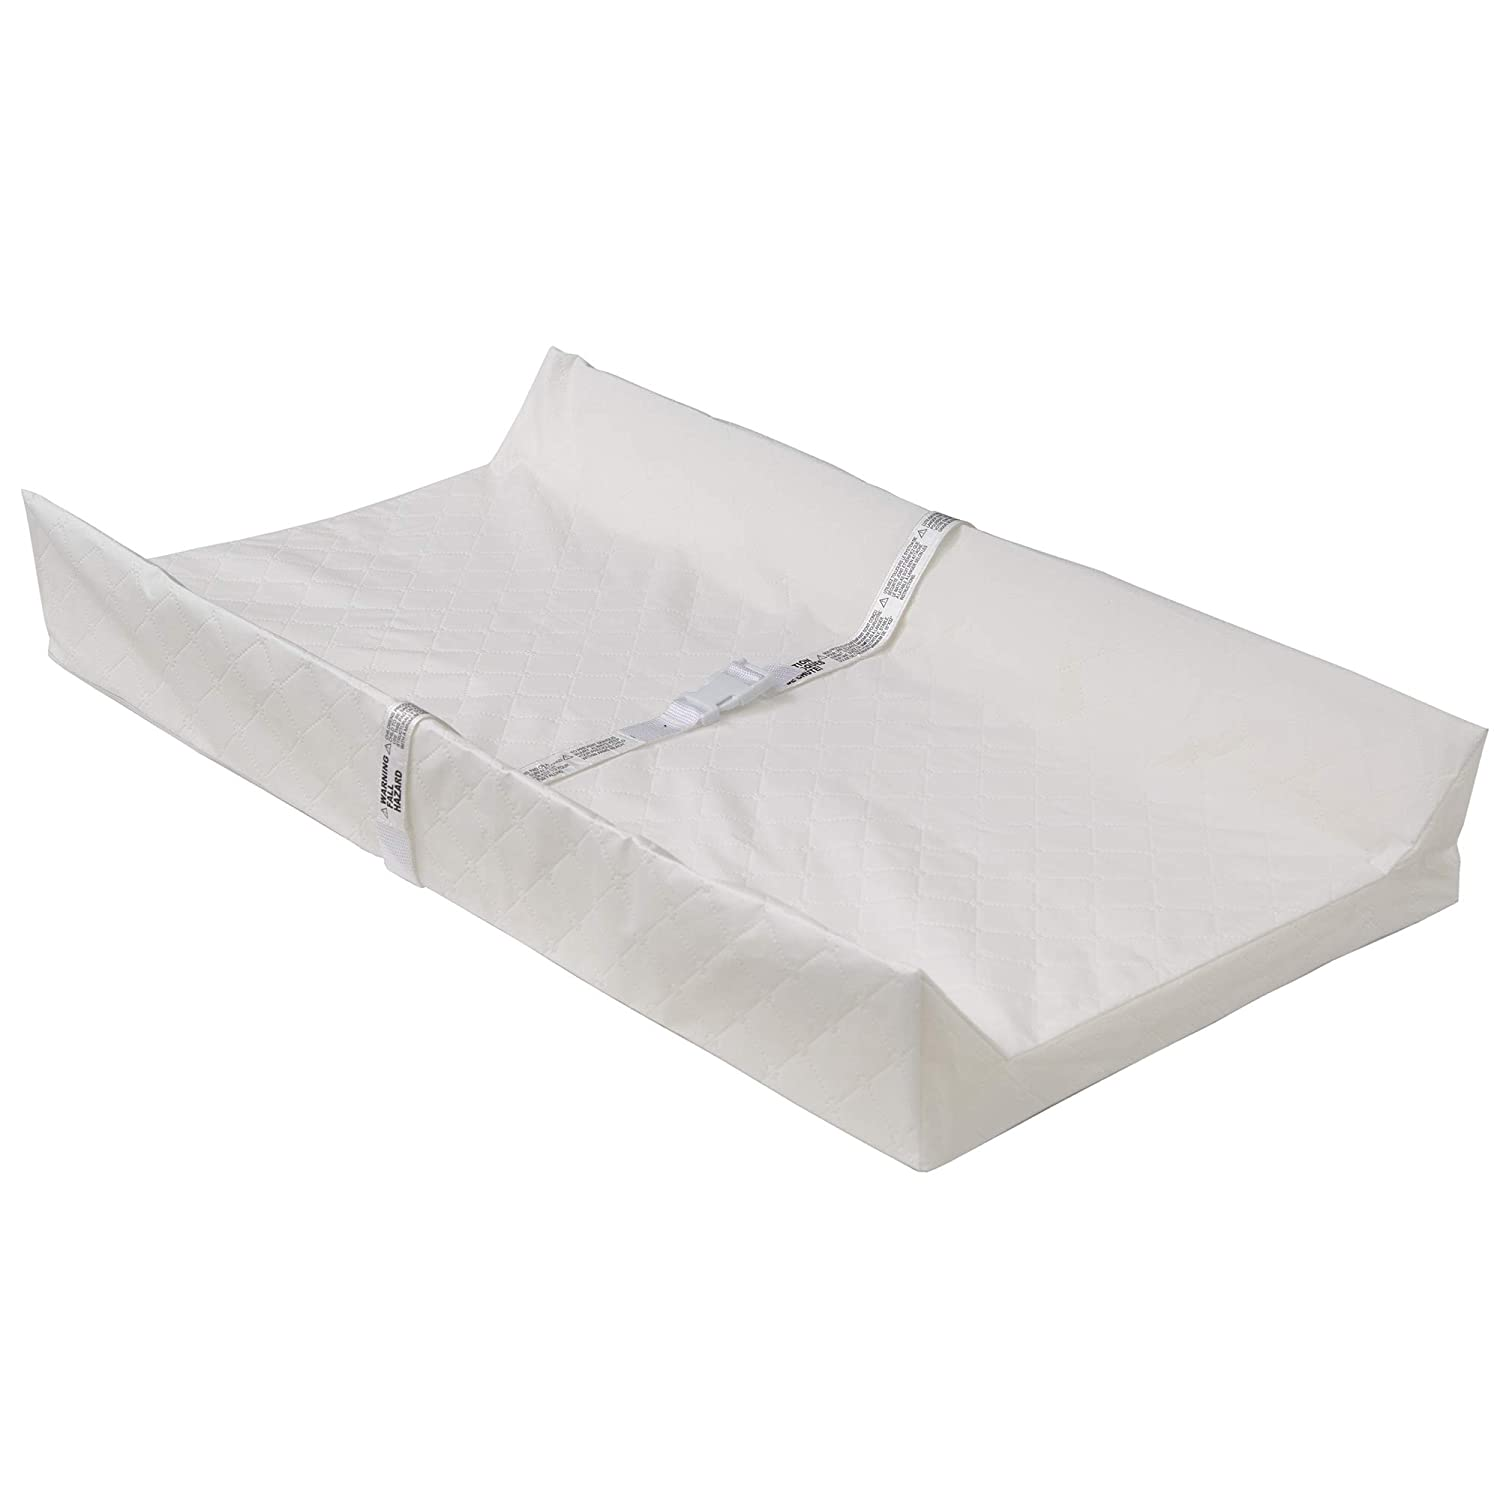 Delta Children Foam Contoured Changing Pad with Waterproof Cover